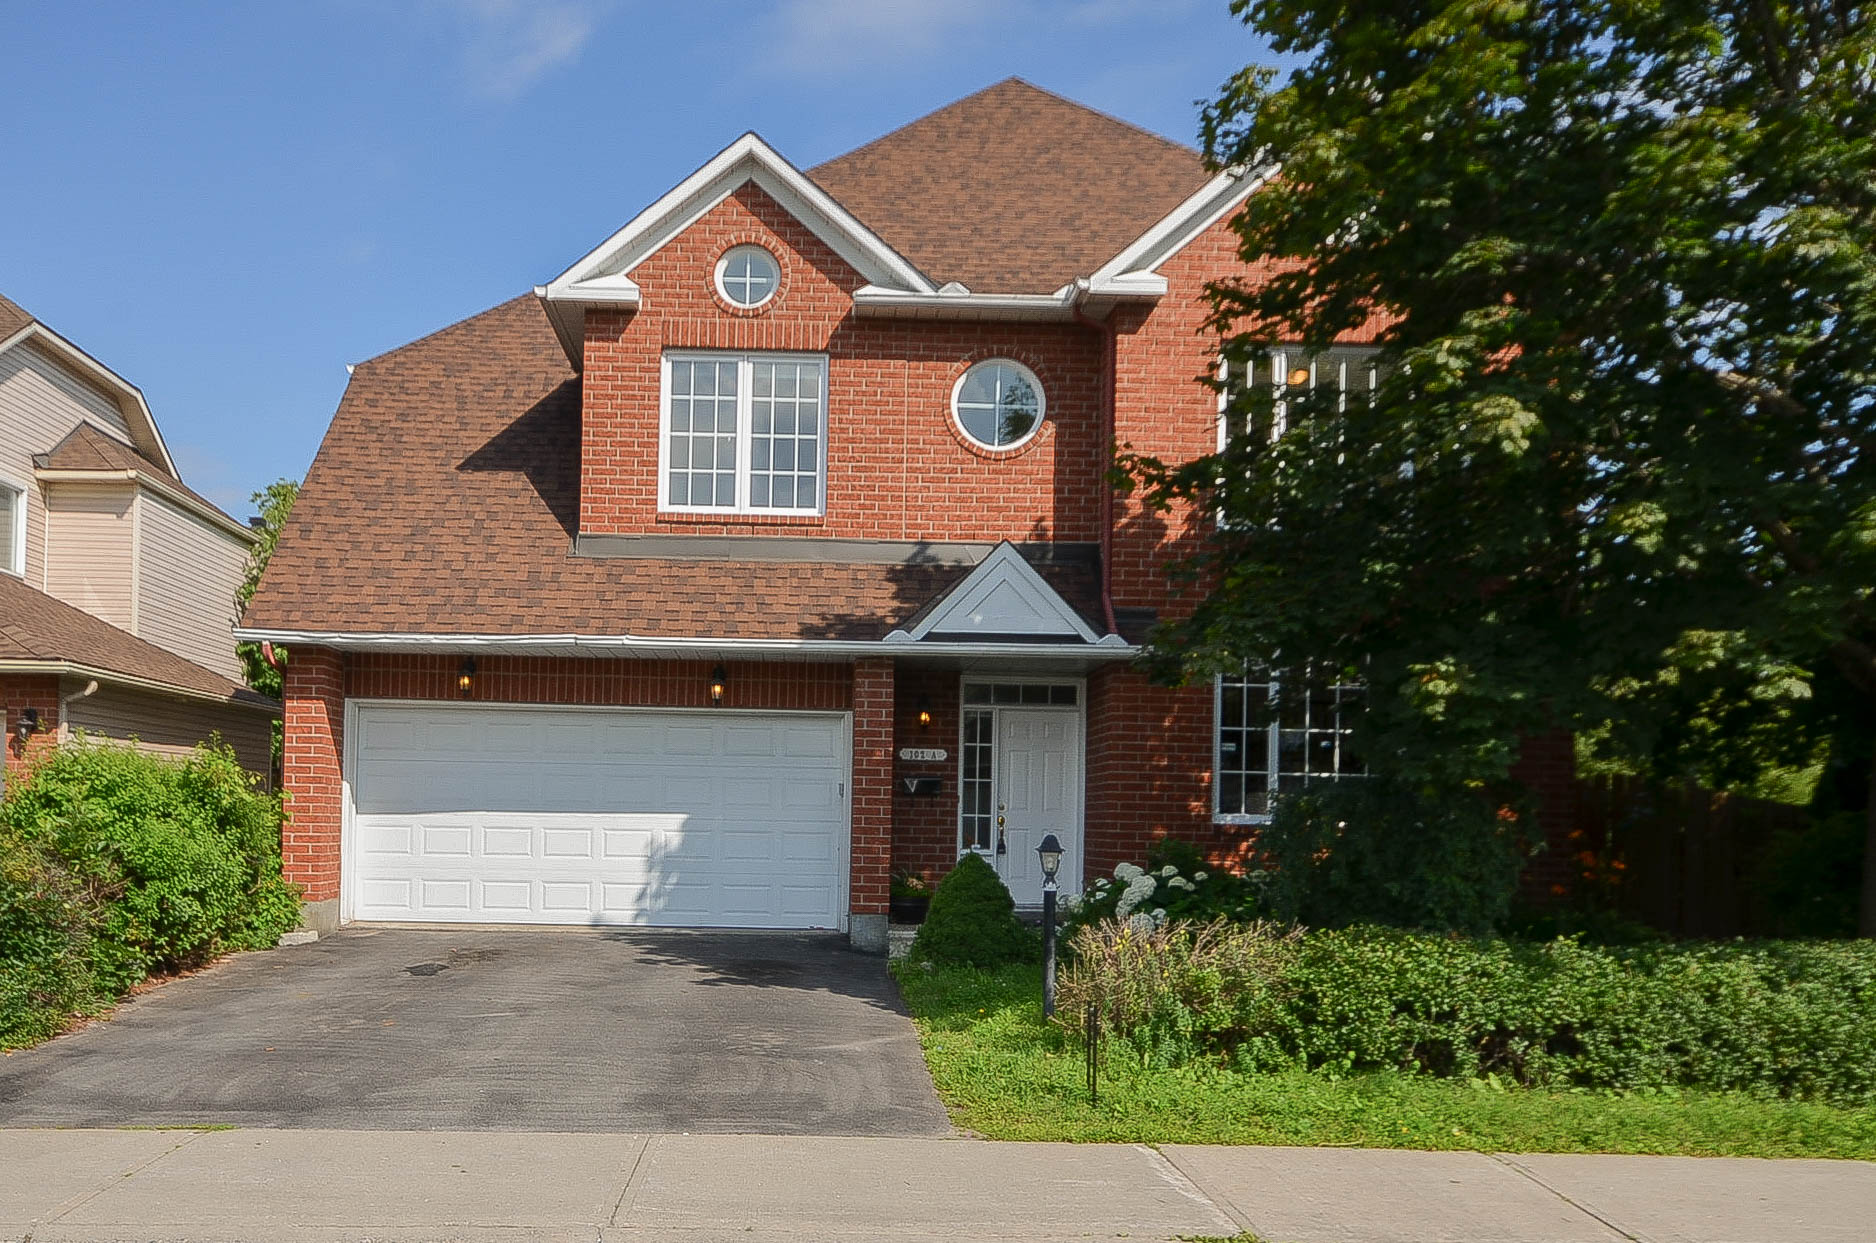 102A Craig Henry | Single Family Home with 4 Bedrooms and 4 Bathrooms